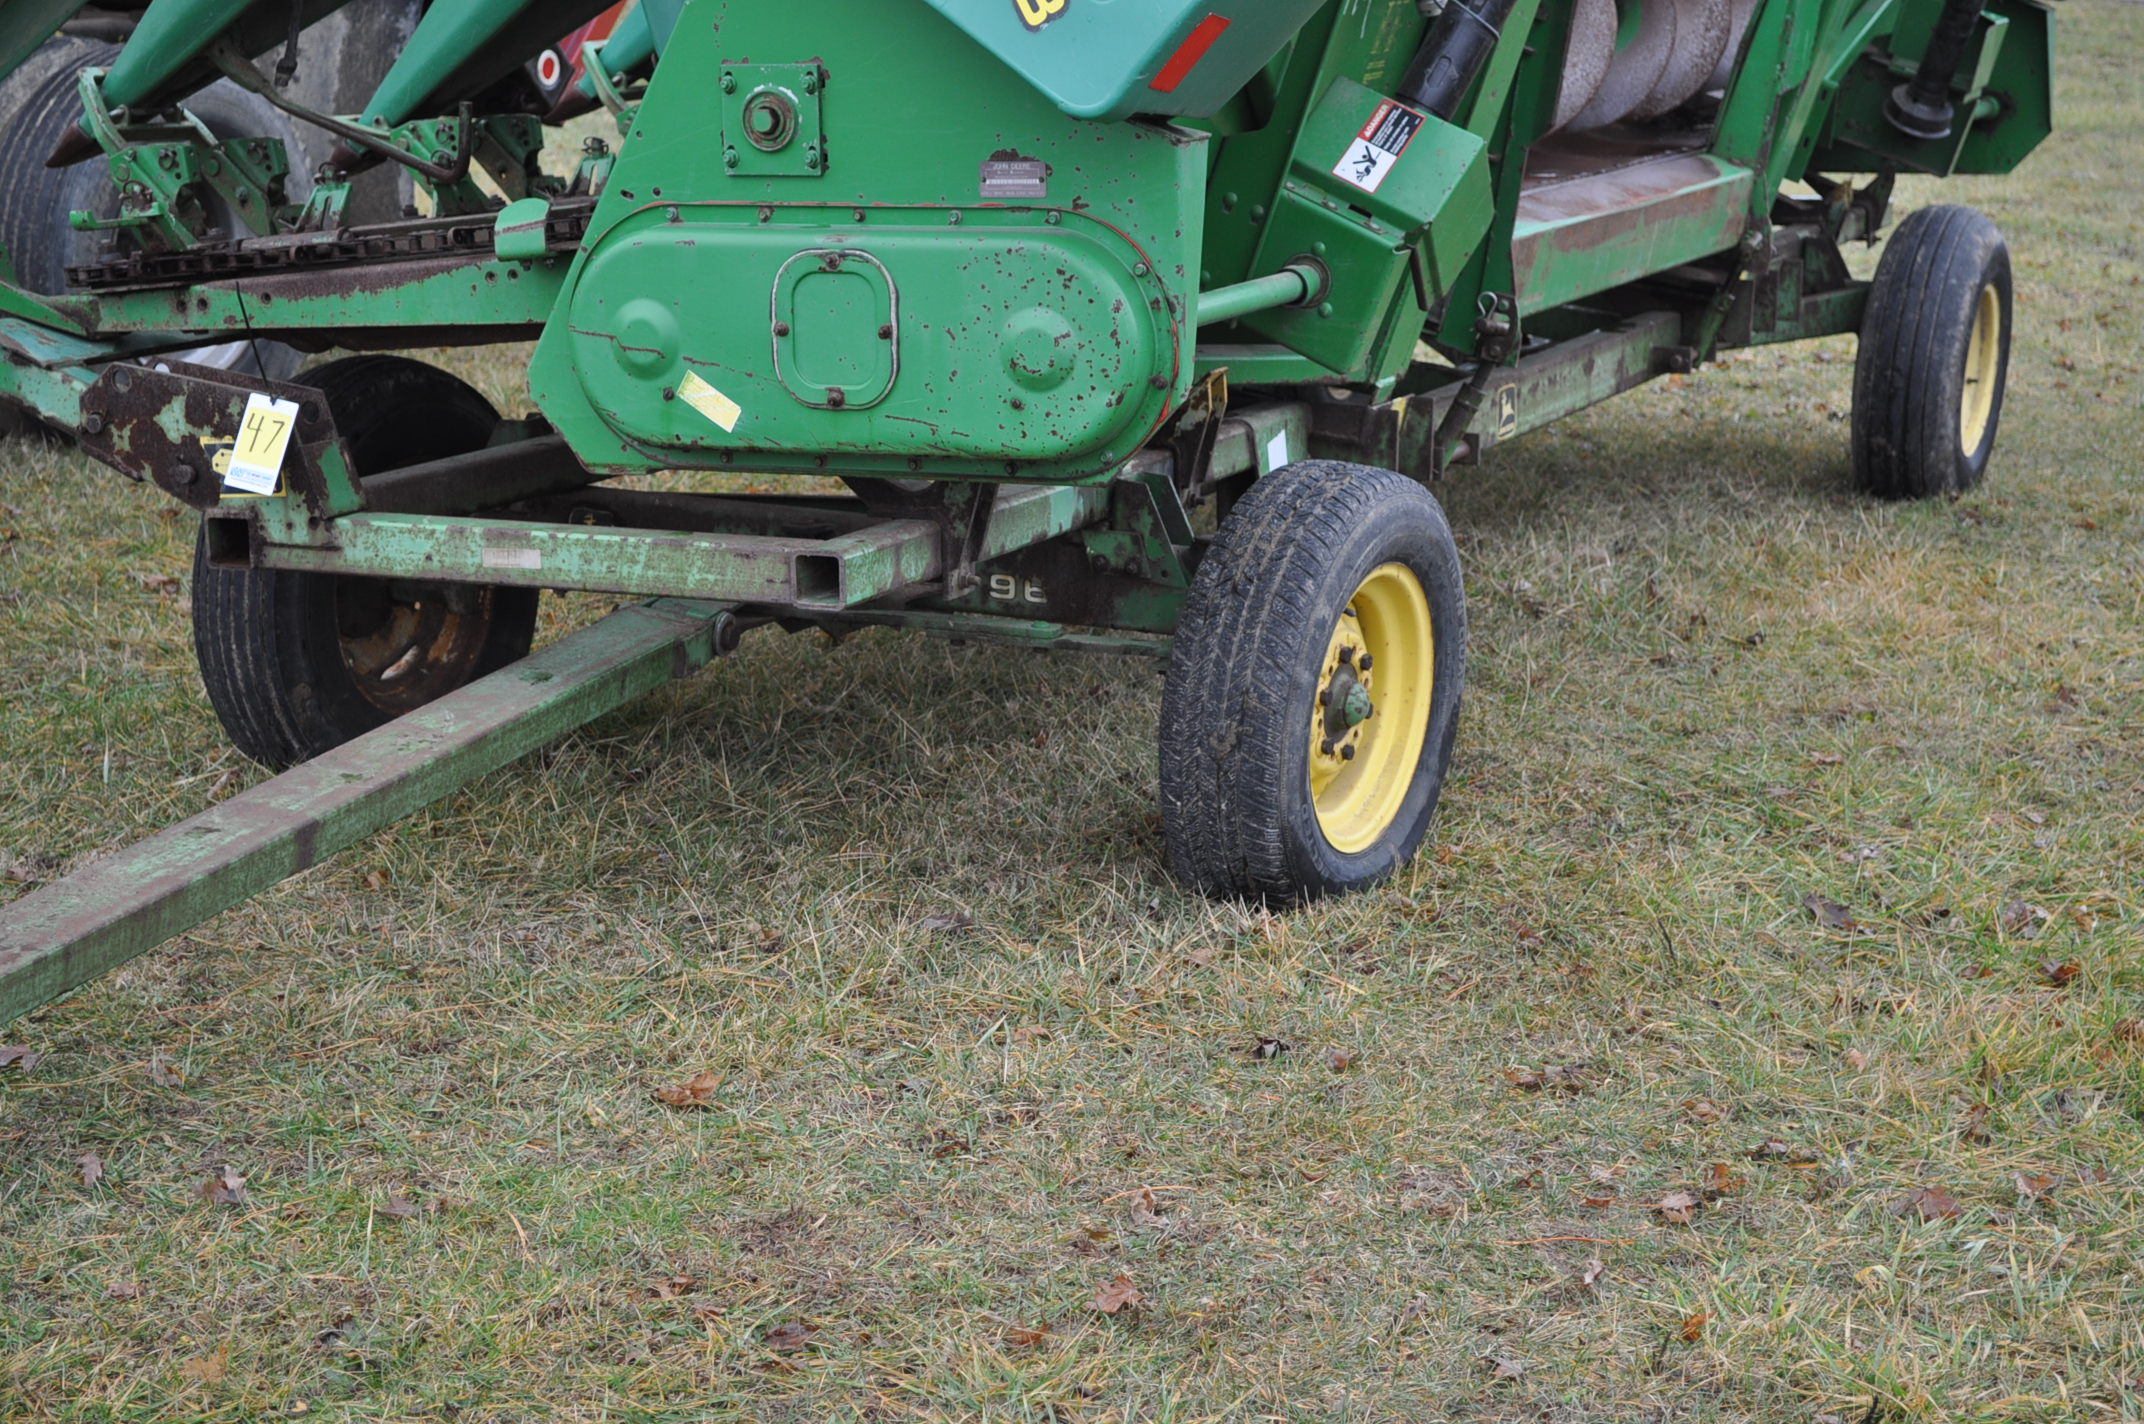 20' John Deere header wagon, 9.5 L-15 tires